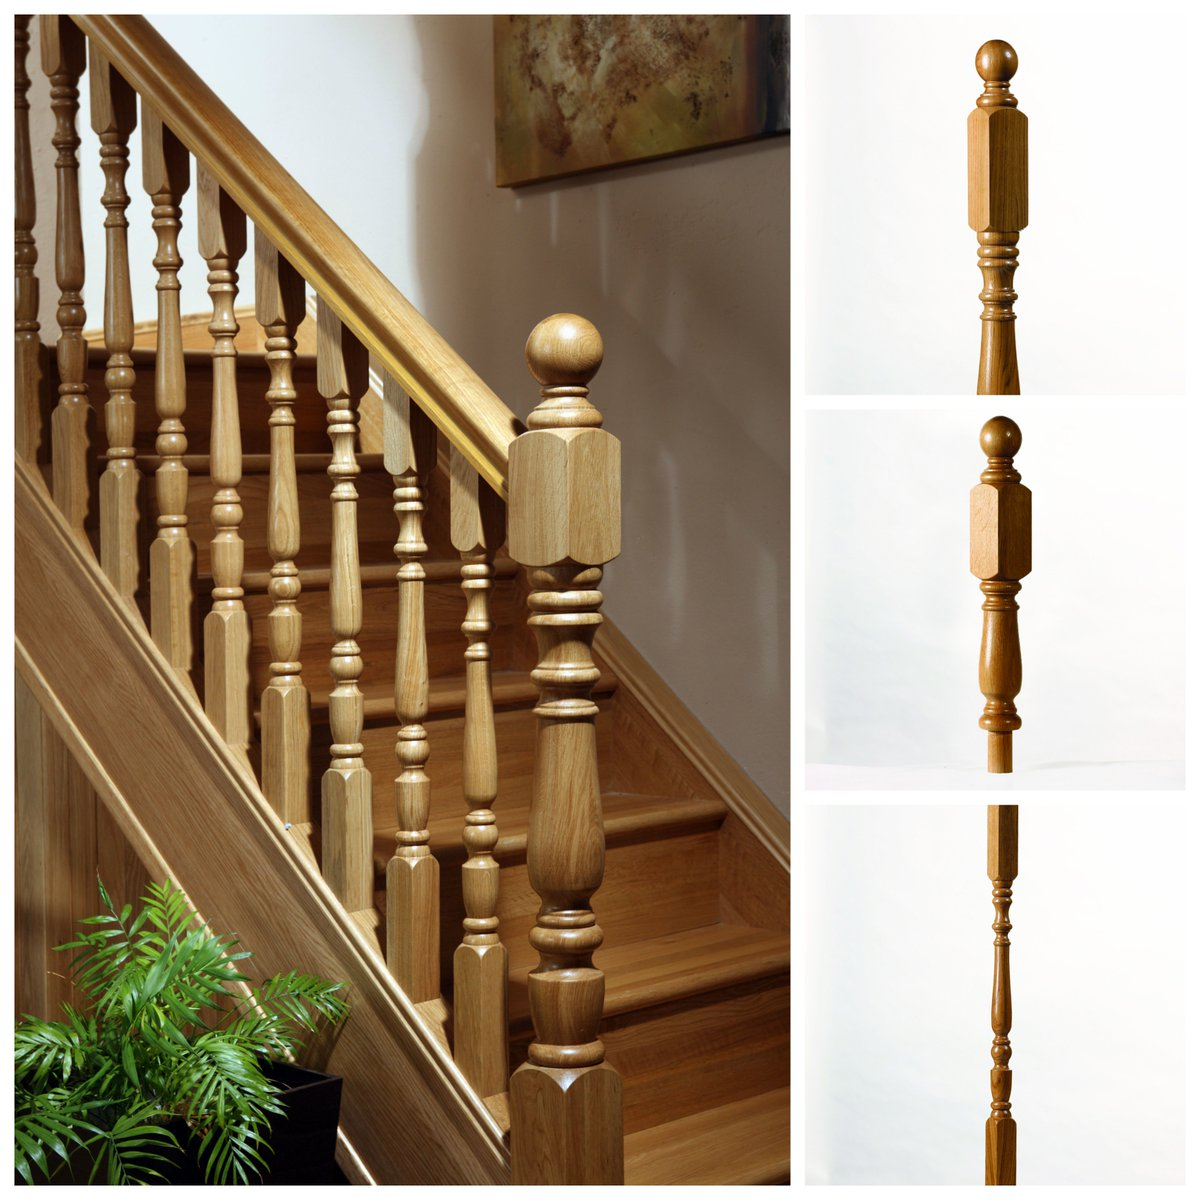 A Large Variety Of Newel Posts And Post Caps This Is Stairparts Collection That Oozes Staircase Taste Design Https Goo Gl Wbfeva